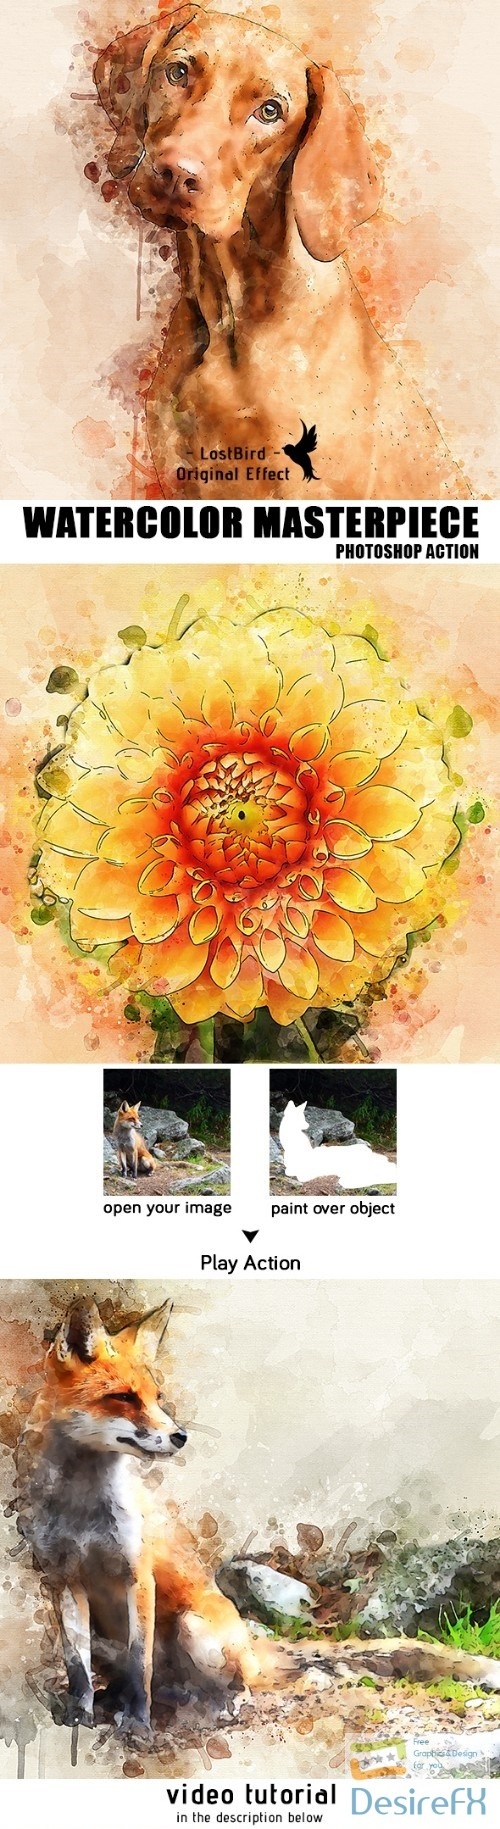 actions-atn - Watercolor Masterpiece - Photoshop Action 22921333